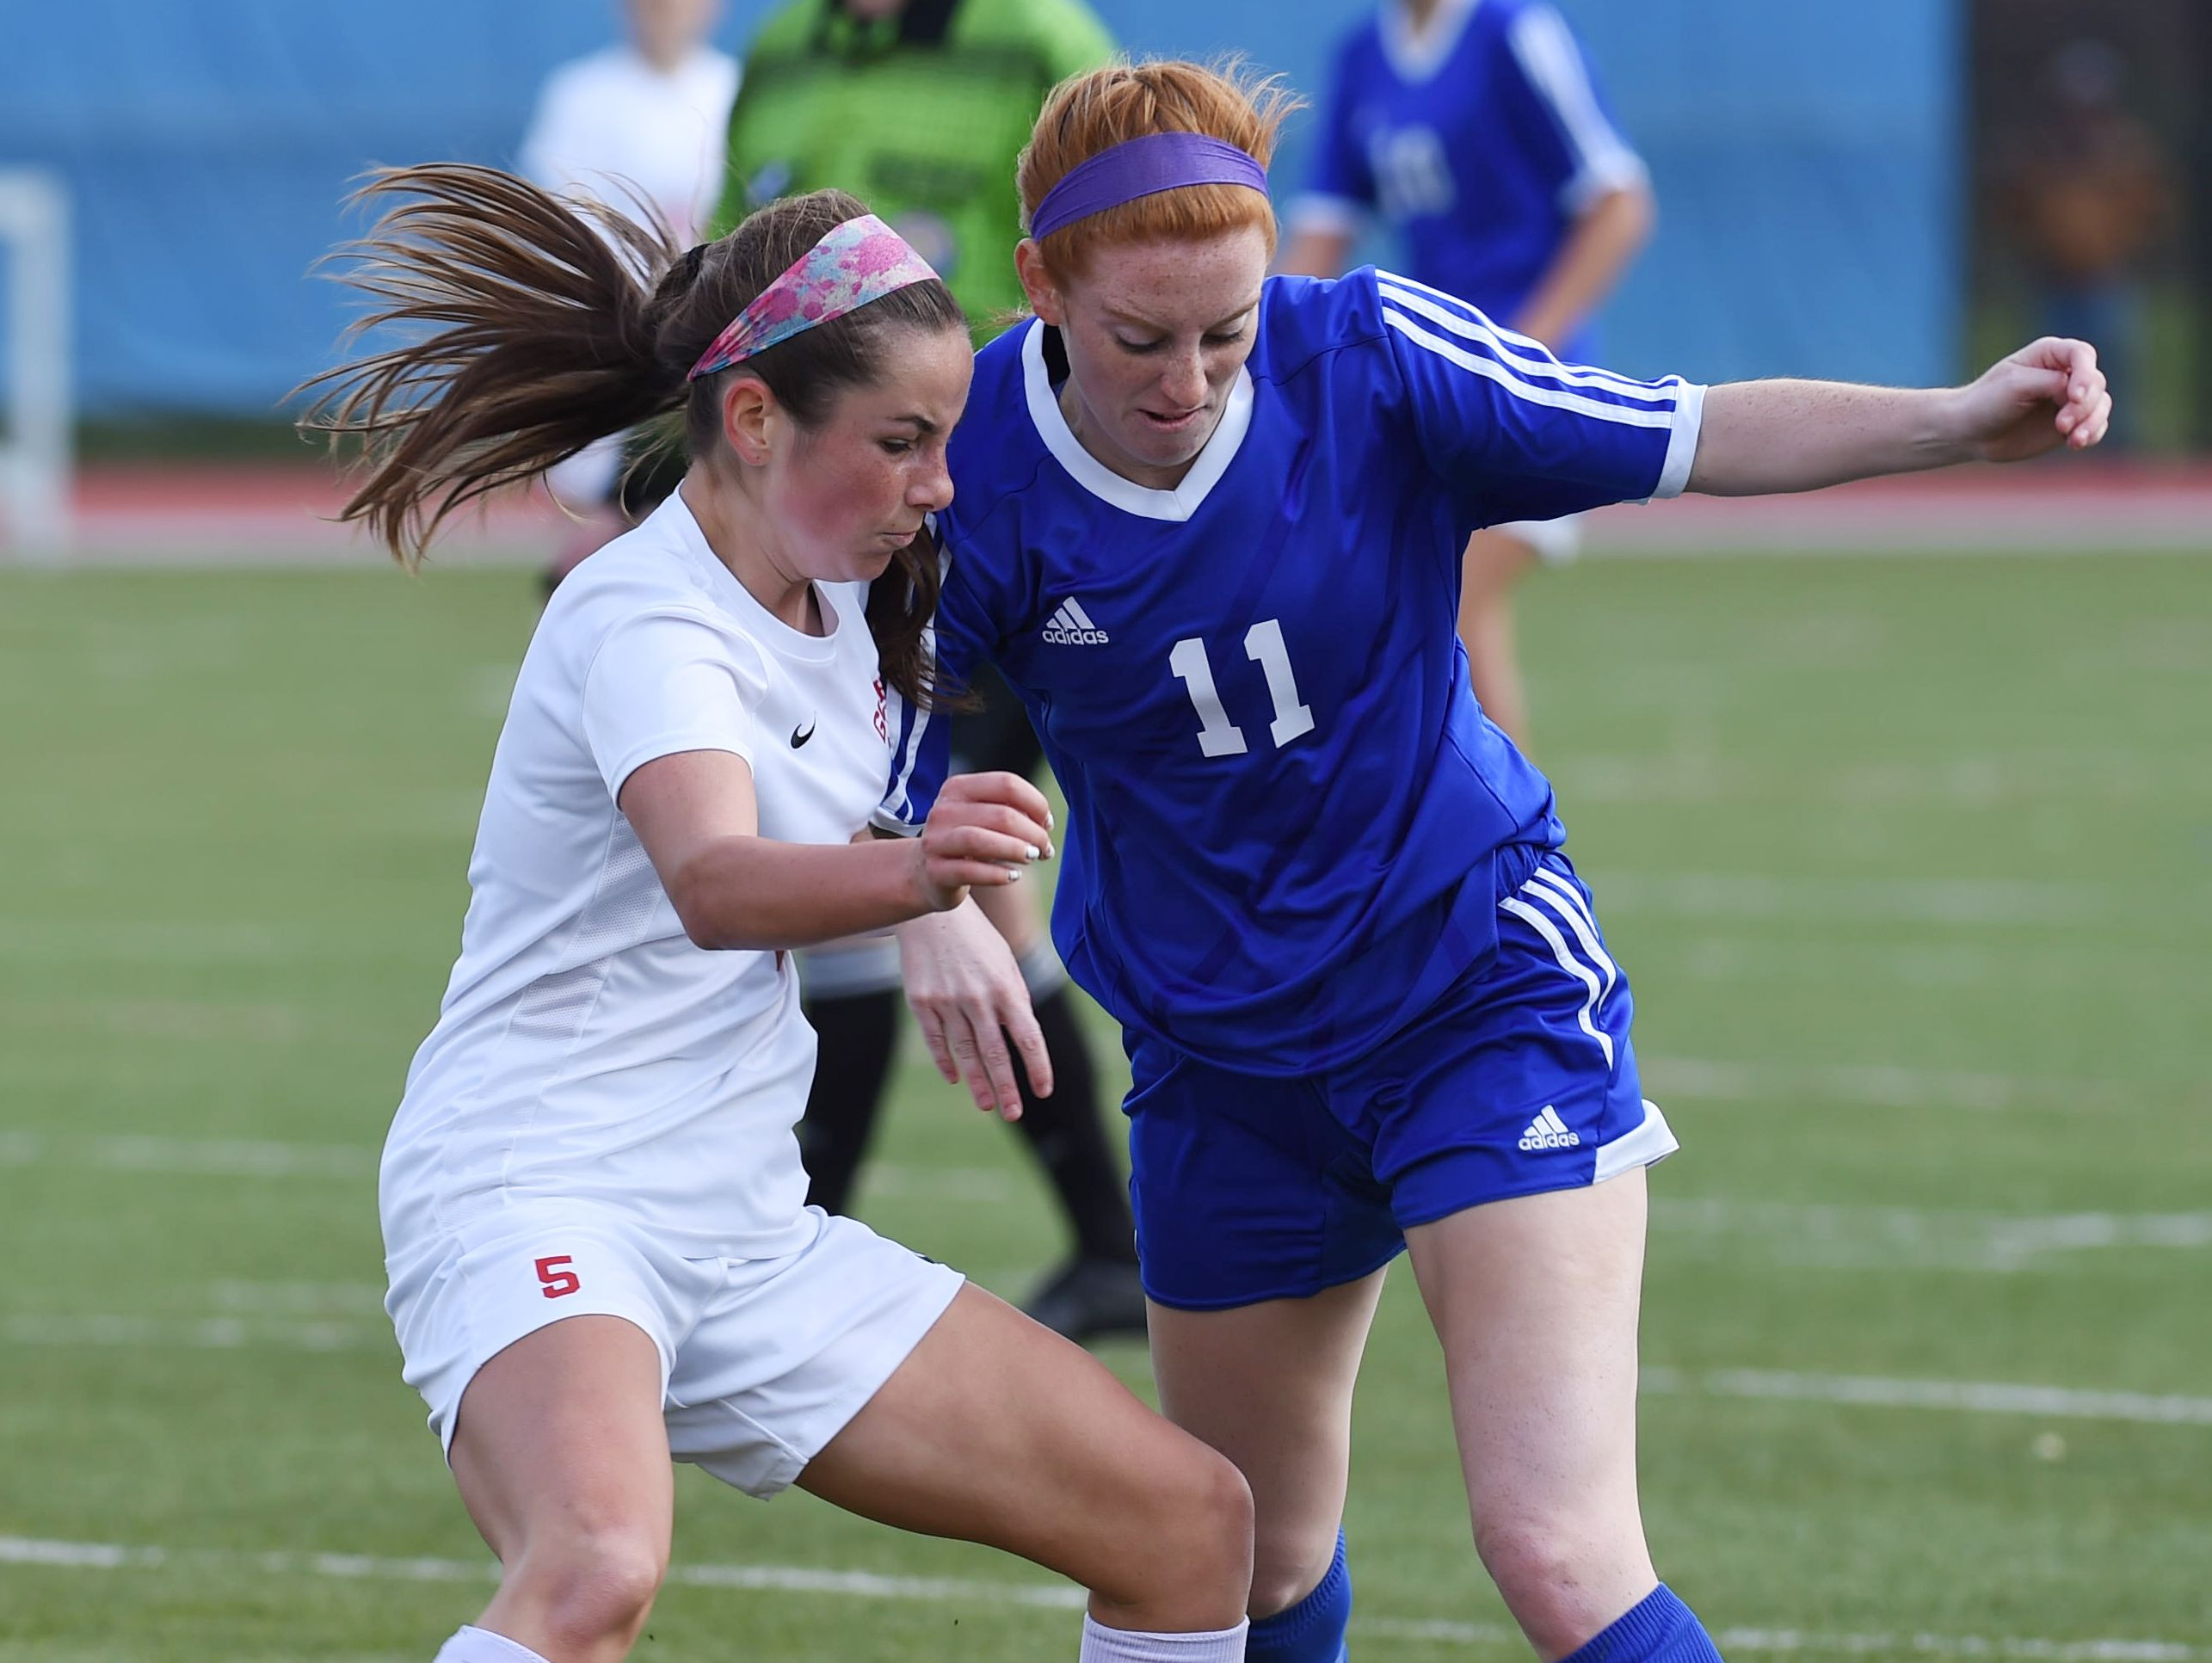 Pearl River's Tara Guilfoyle, right, and Goshen's Skylar Stitskin, left, fight for the ball during Saturday's Class A regional final.